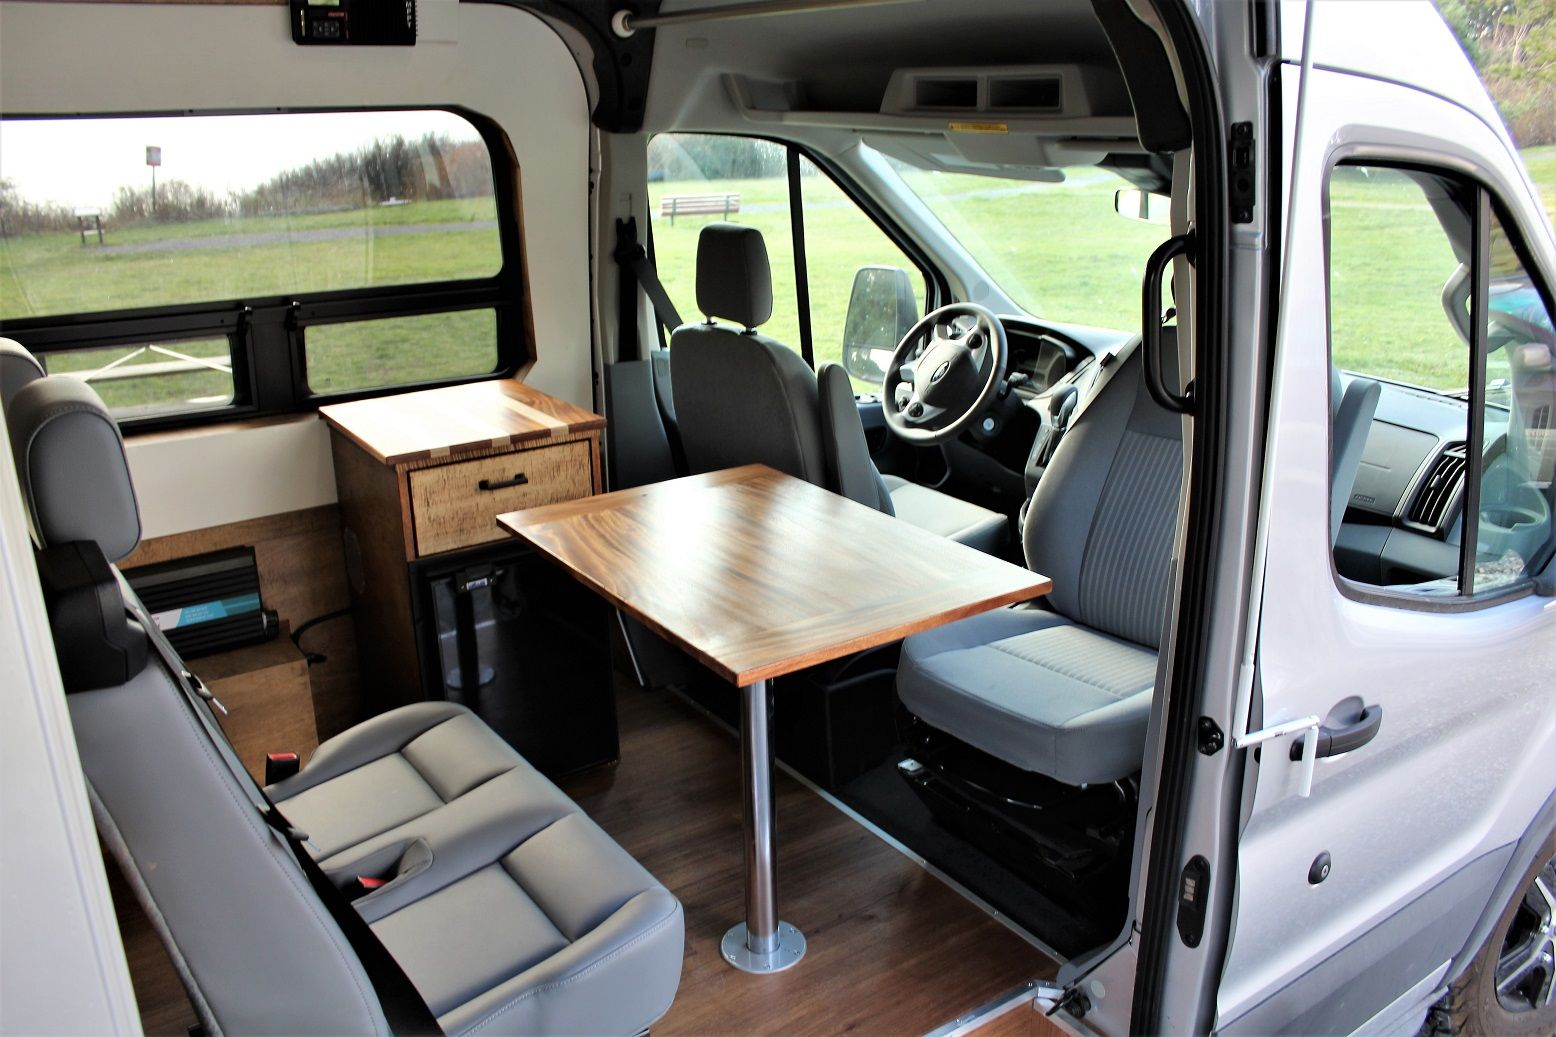 Take A Look At Our Latest Completed Ford Transit Van Conversion To Read More About